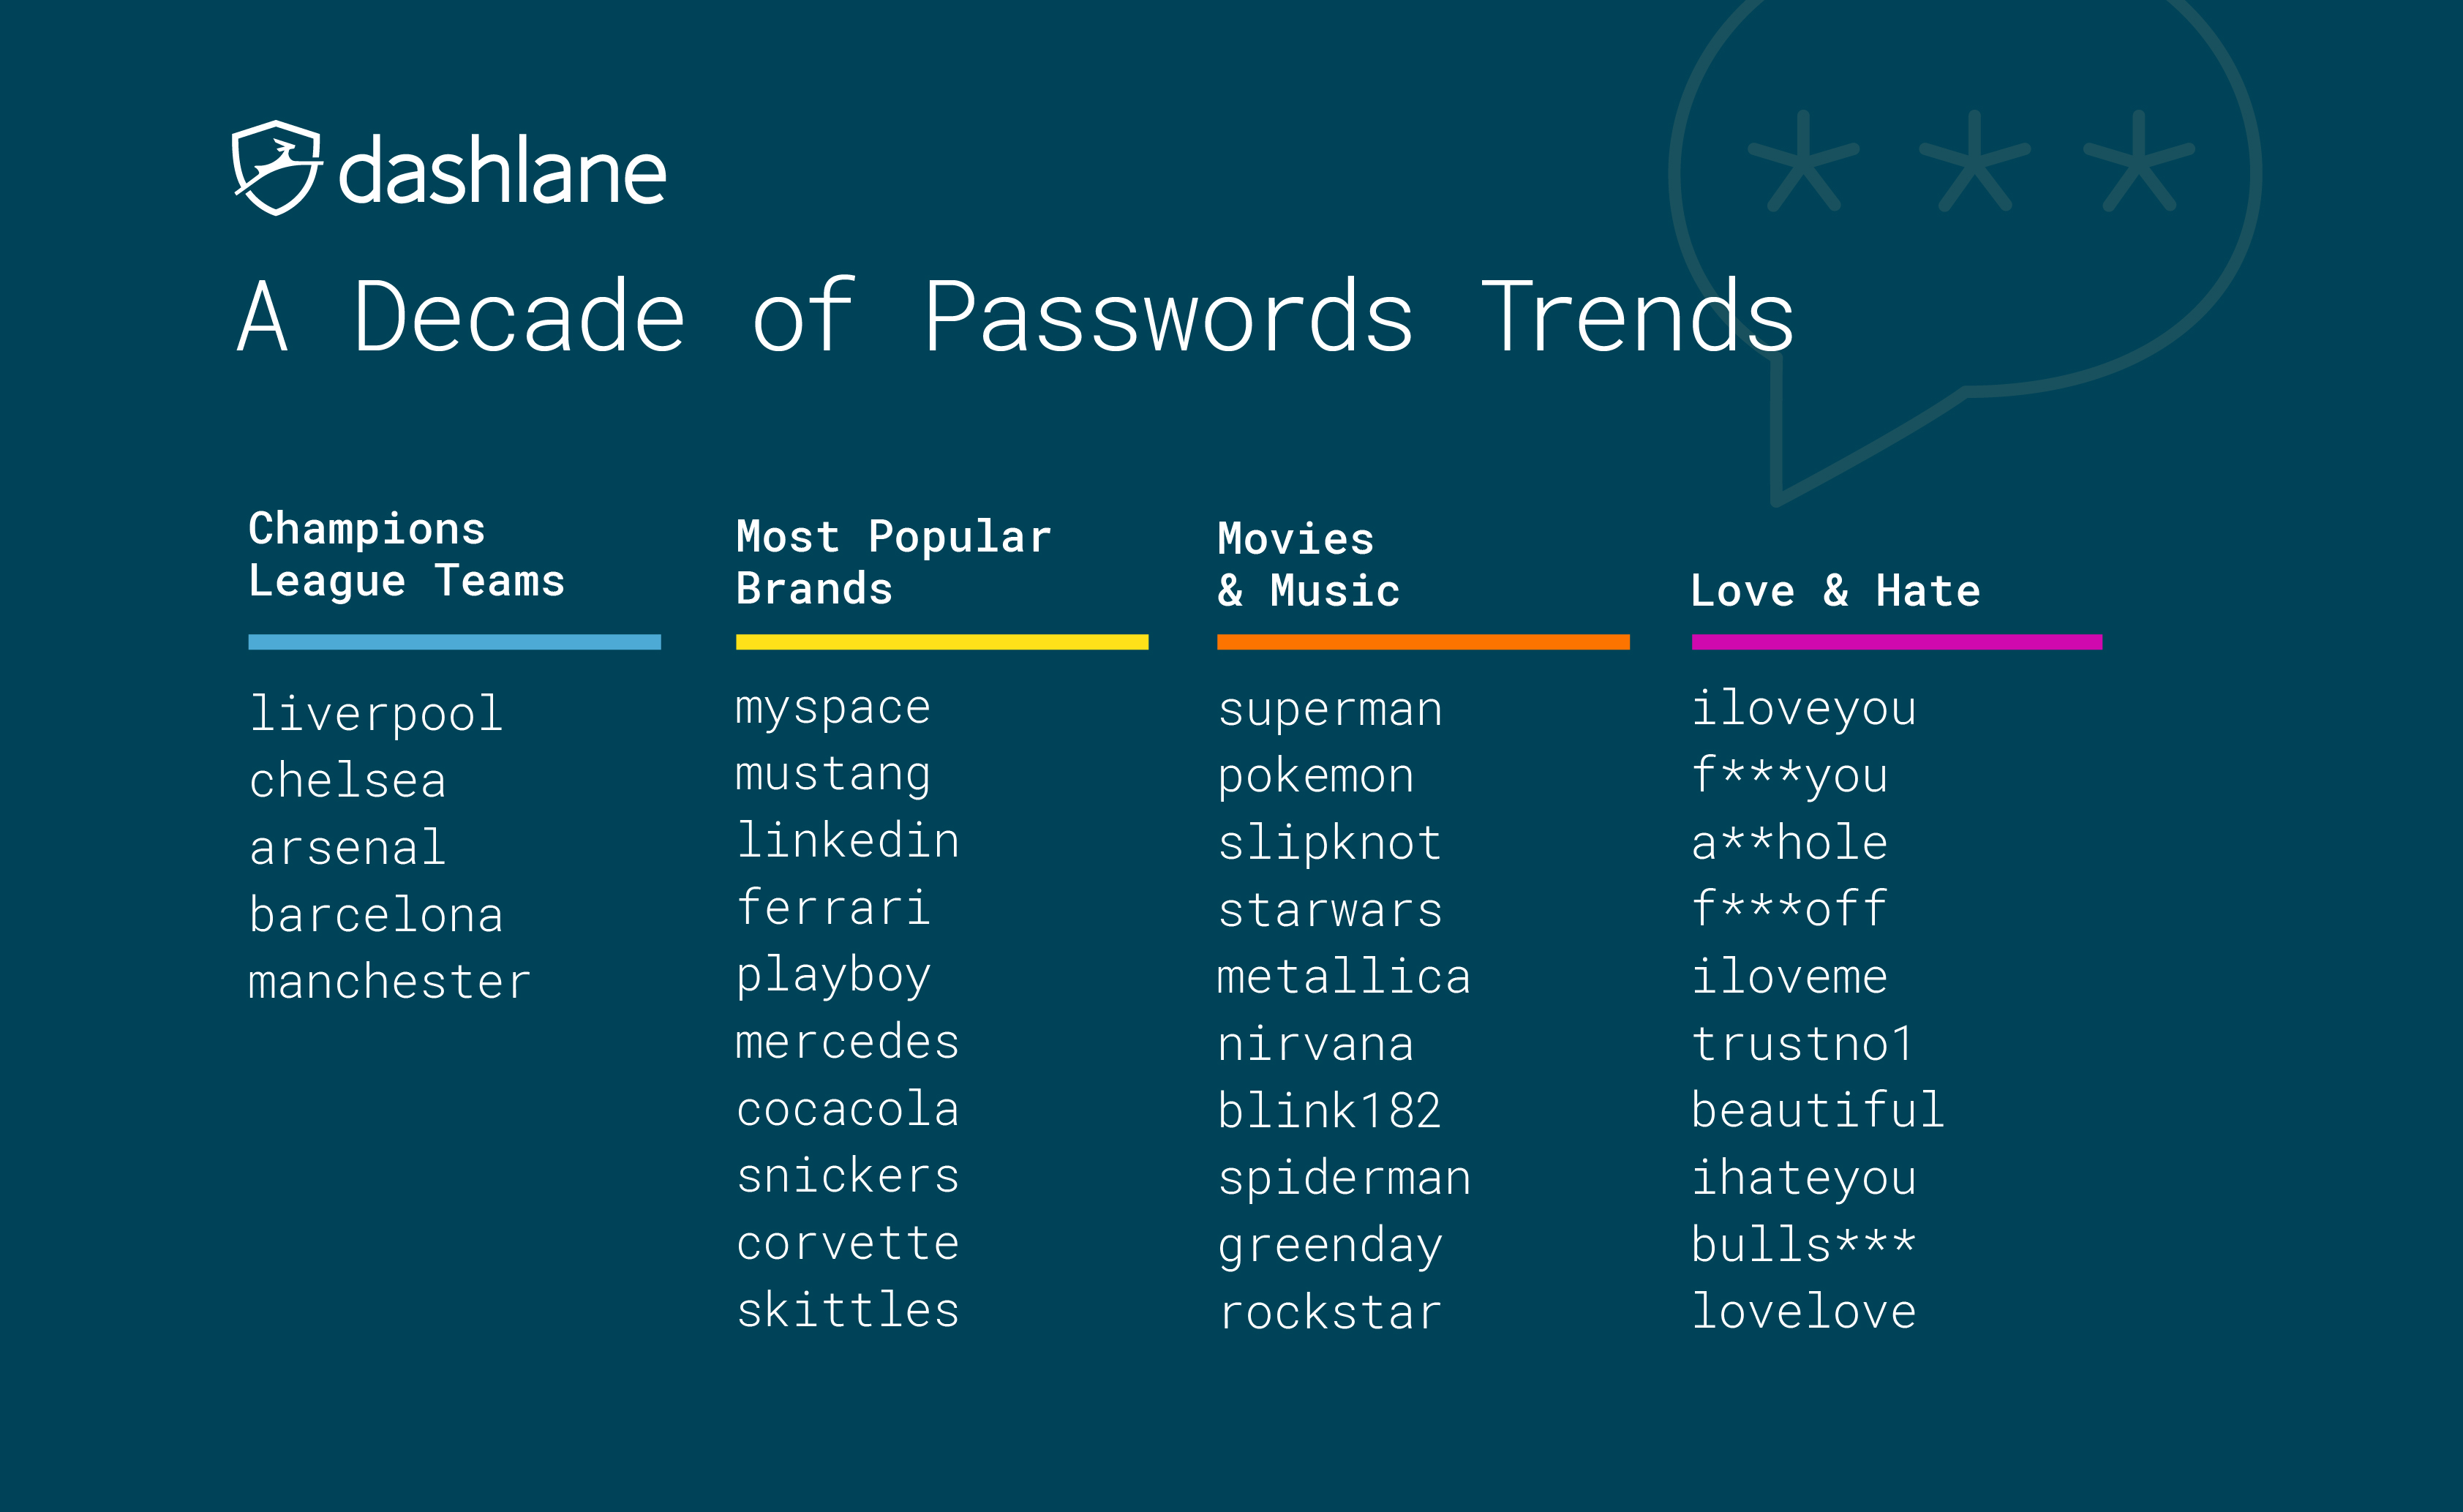 Image from Dashlane